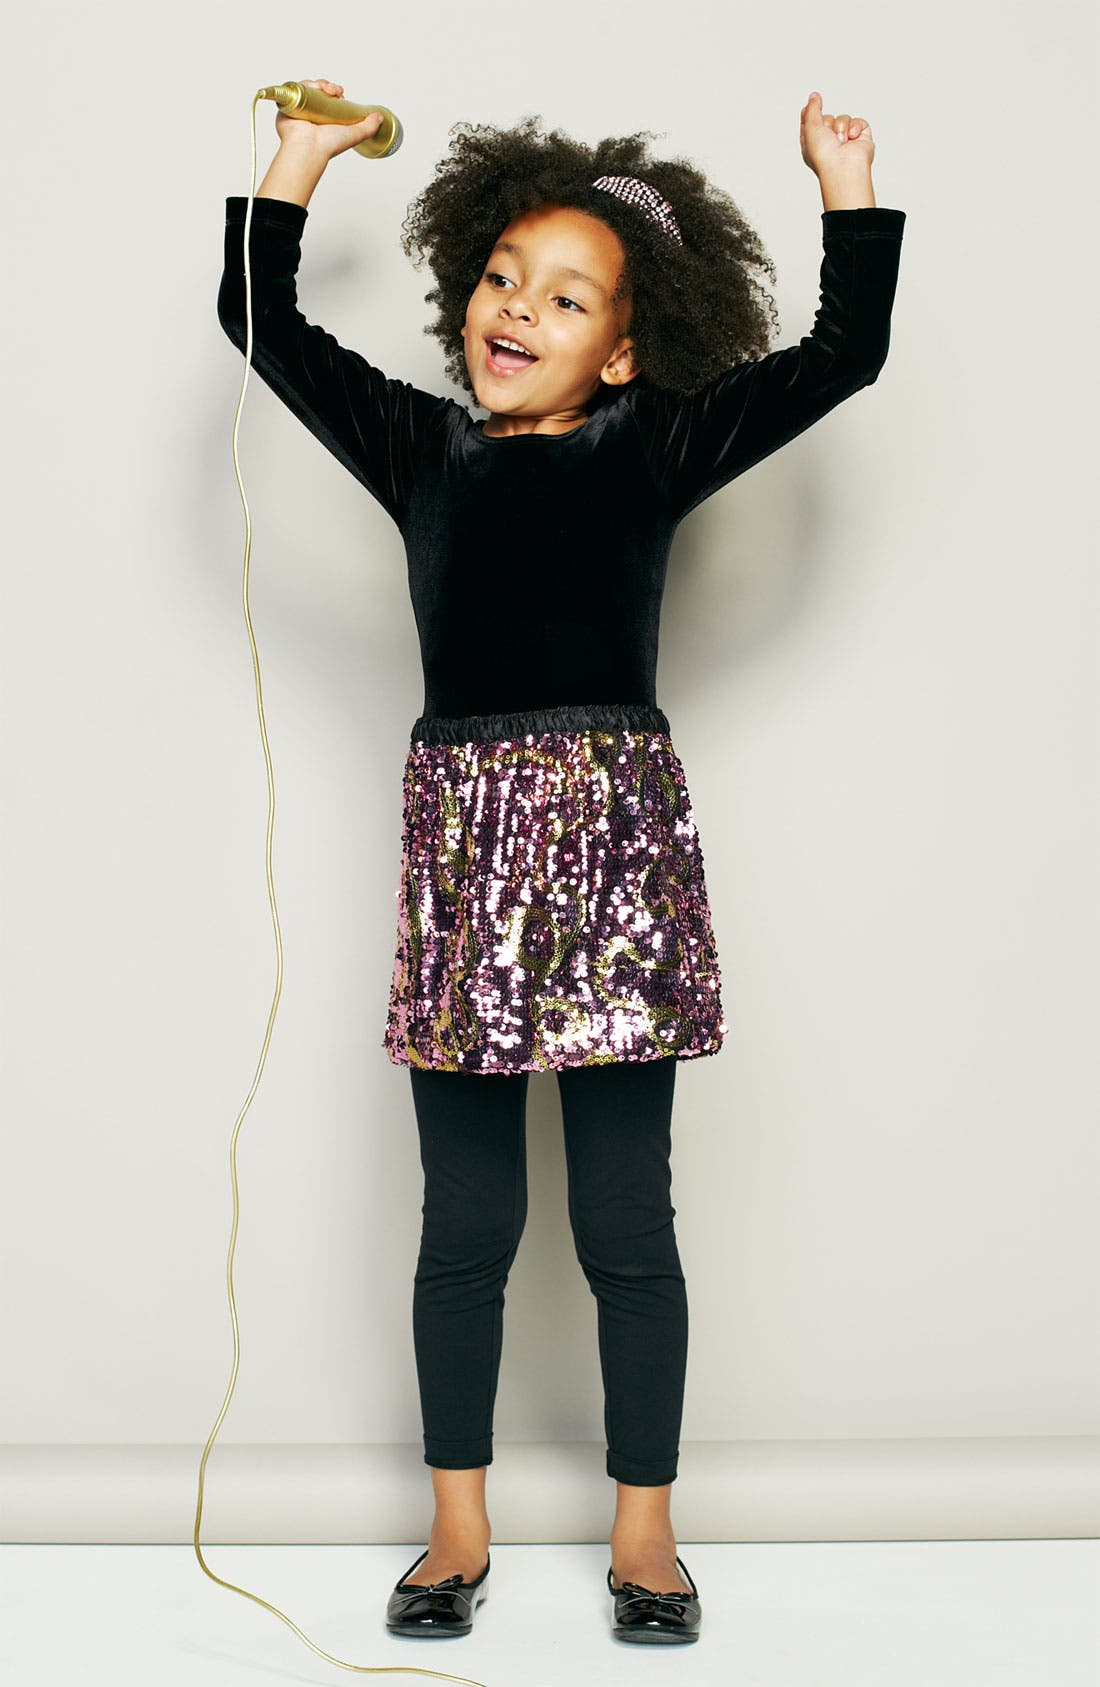 Main Image - Mignone Dress & Nordstrom Footless Tights (Little Girls)